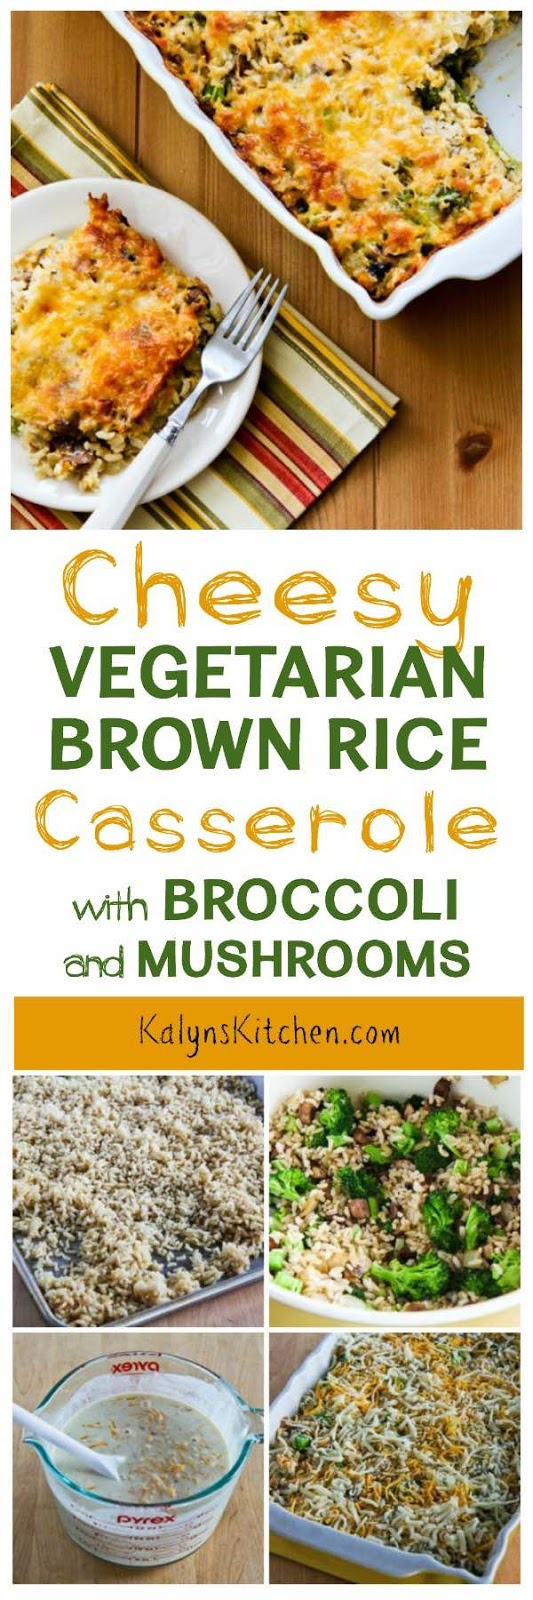 Cheesy Vegetarian Brown Rice Casserole with Broccoli and ...